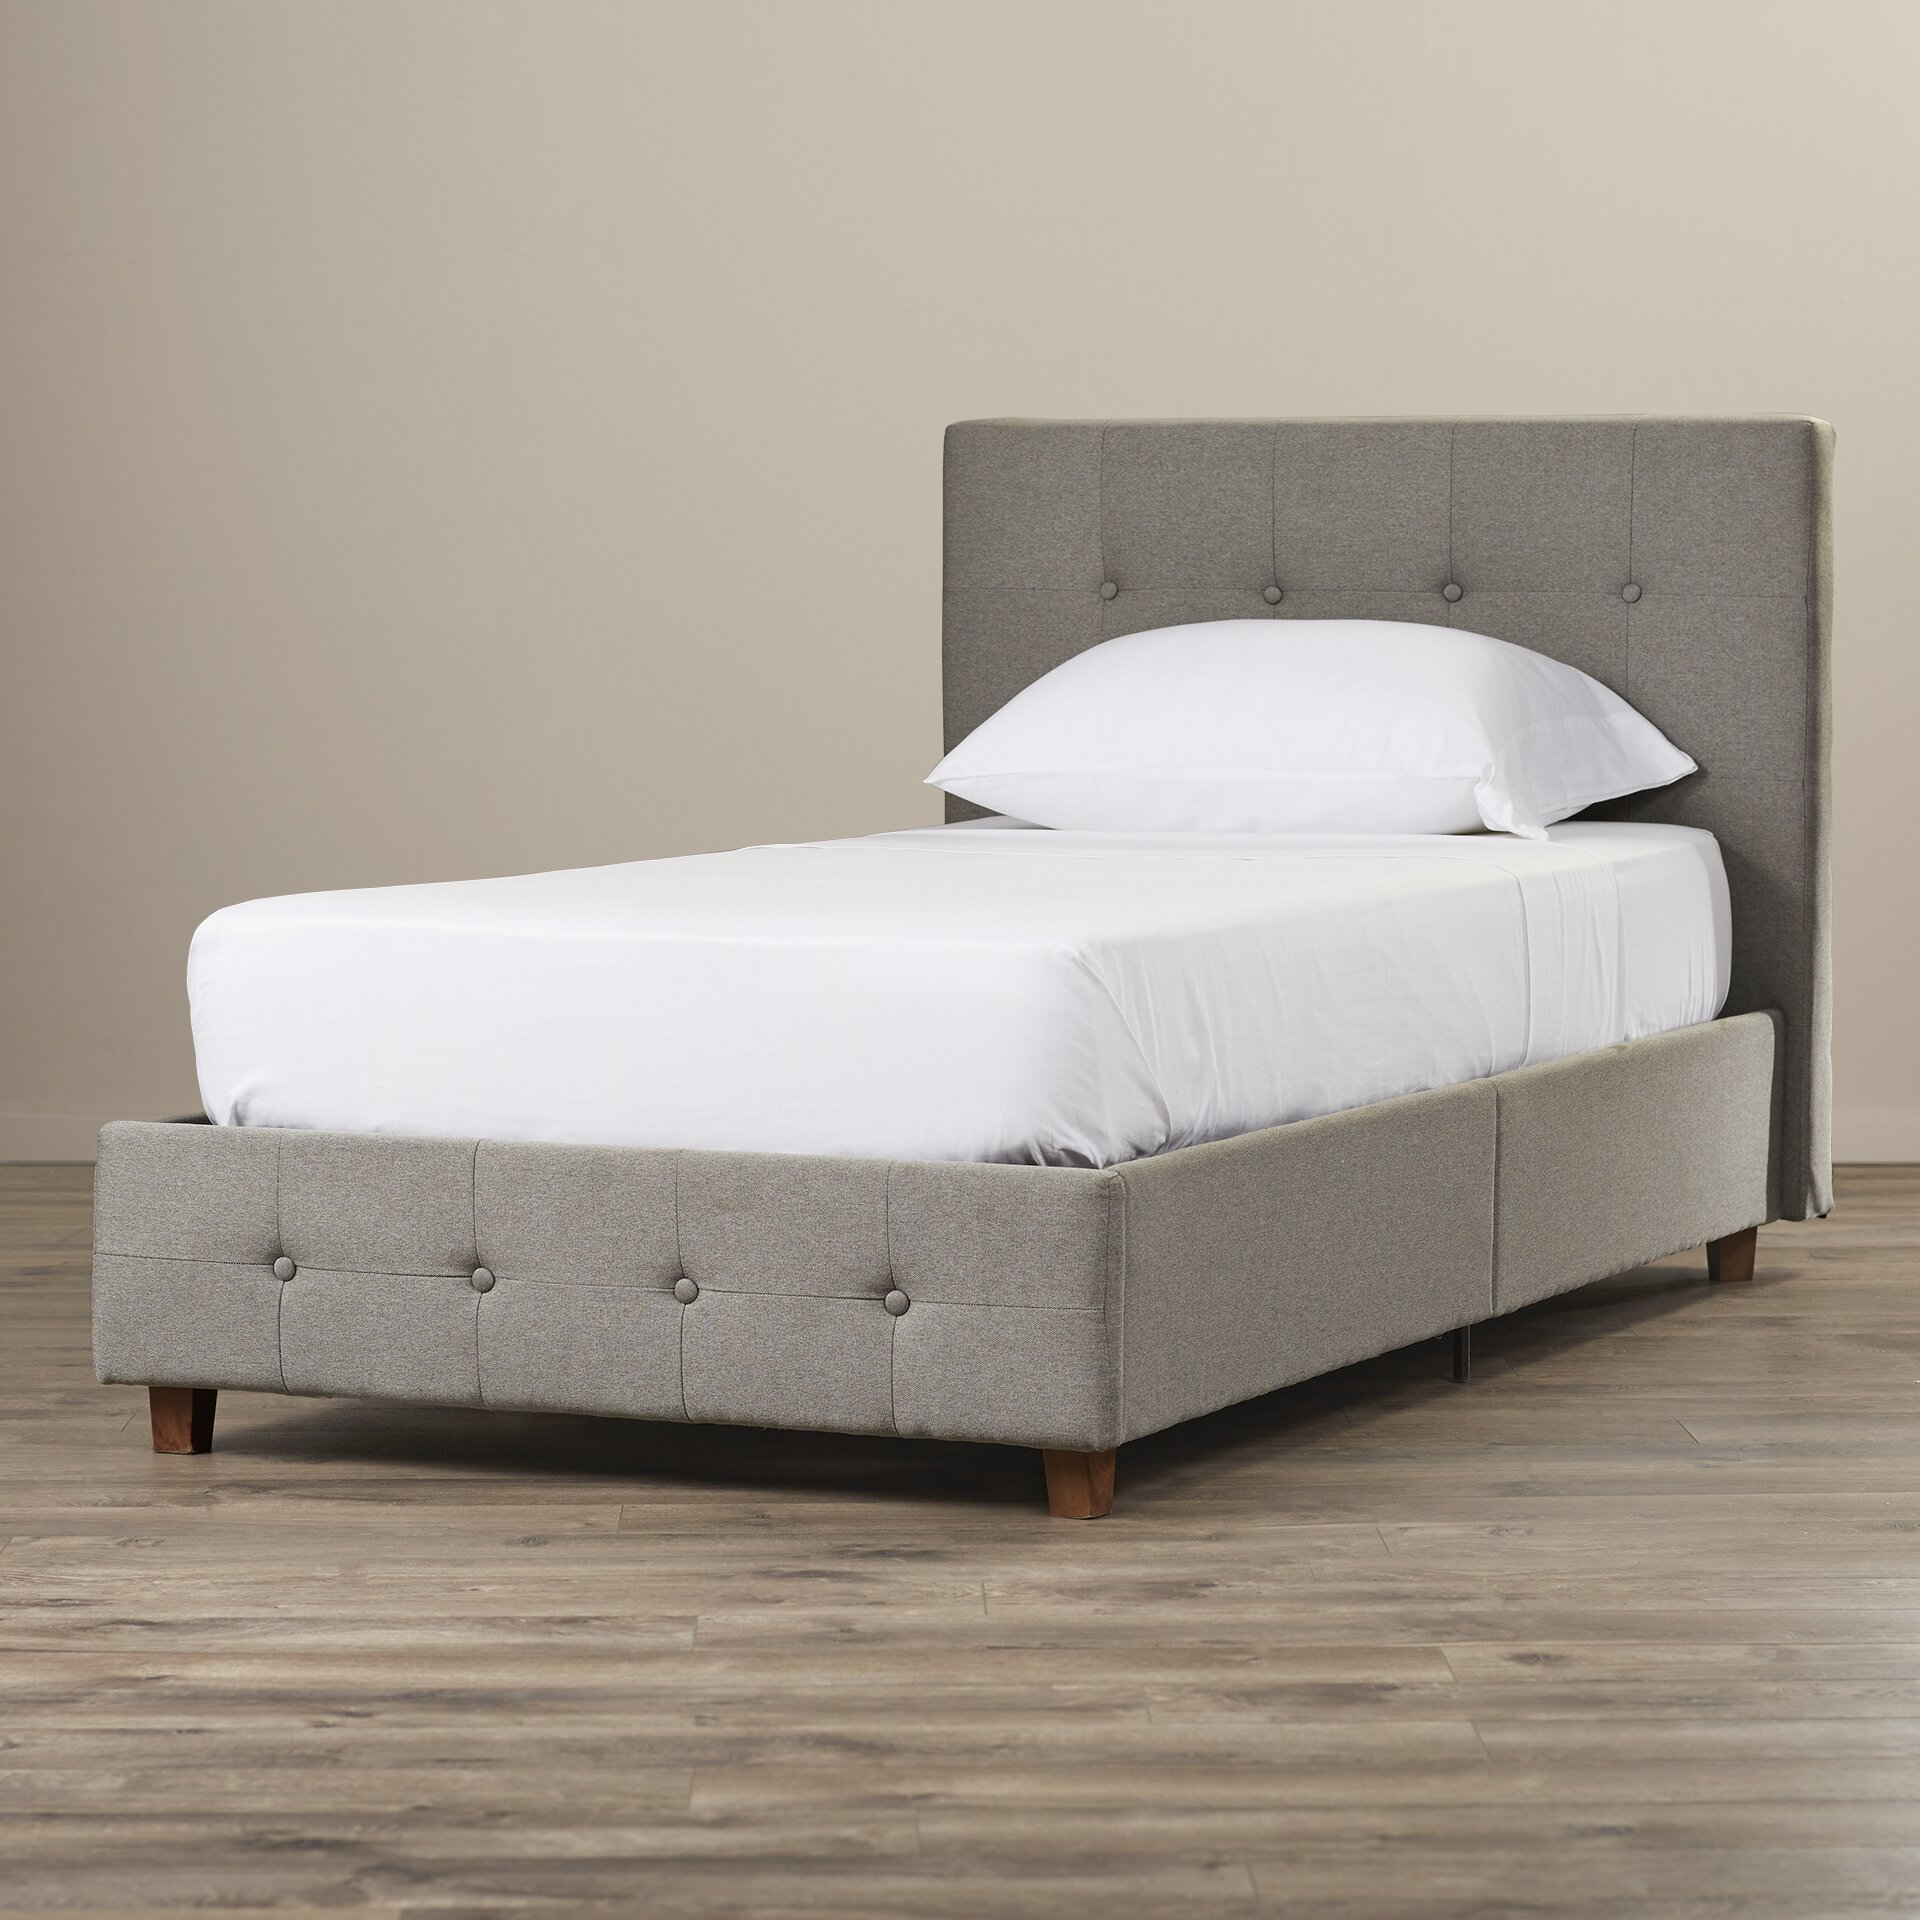 Andover mills amherst upholstered platform bed reviews for Upholstered beds